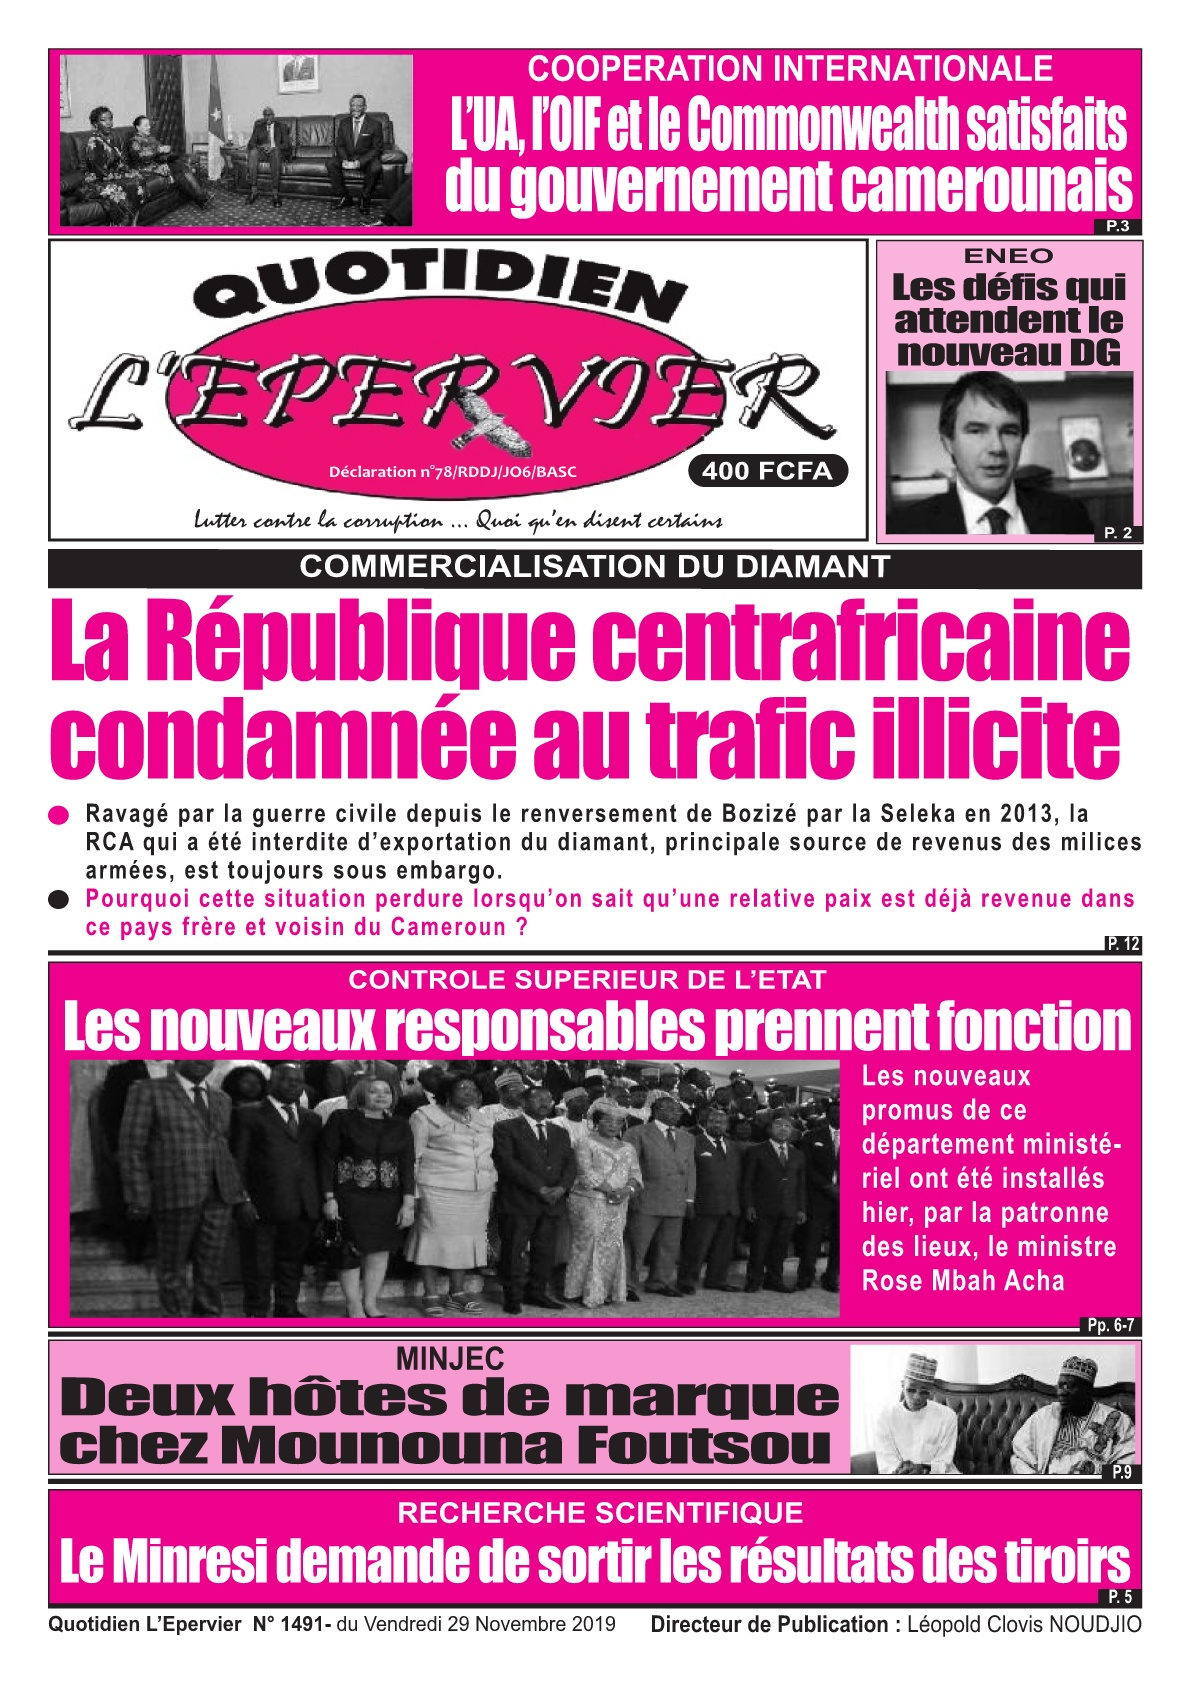 L'Epervier - 29/11/2019